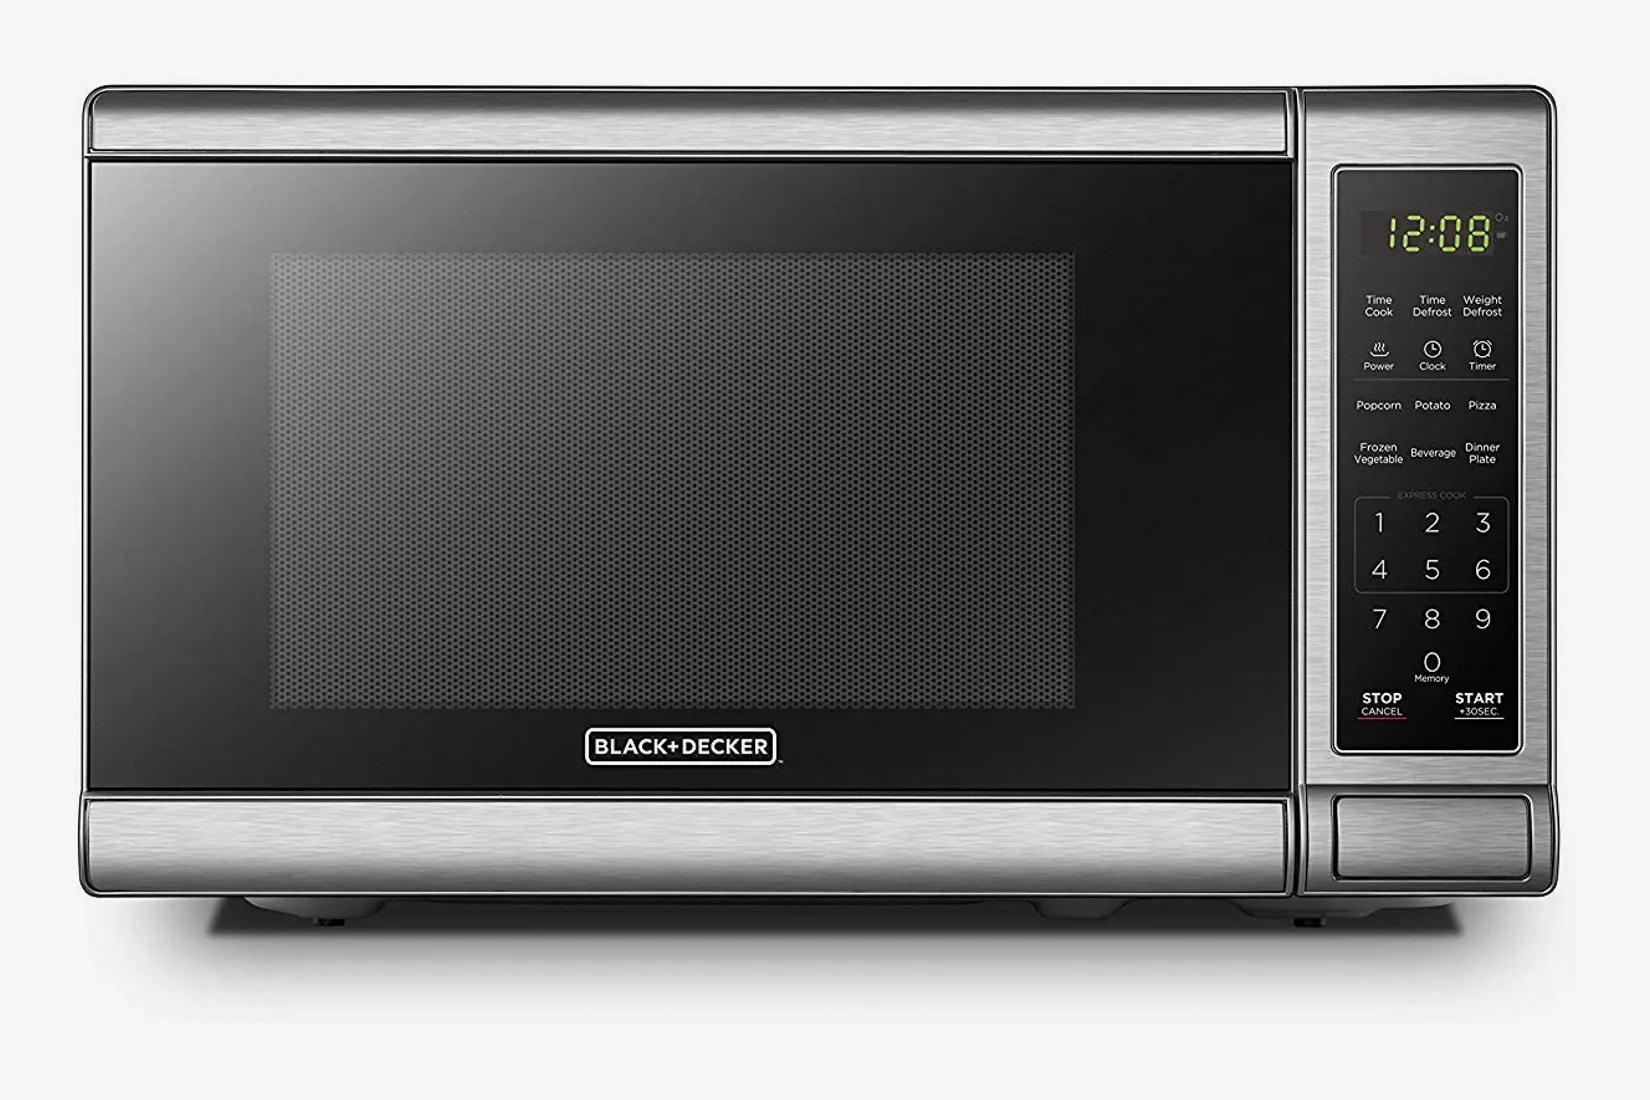 https nymag com strategist article best microwave ovens countertop microwaves html